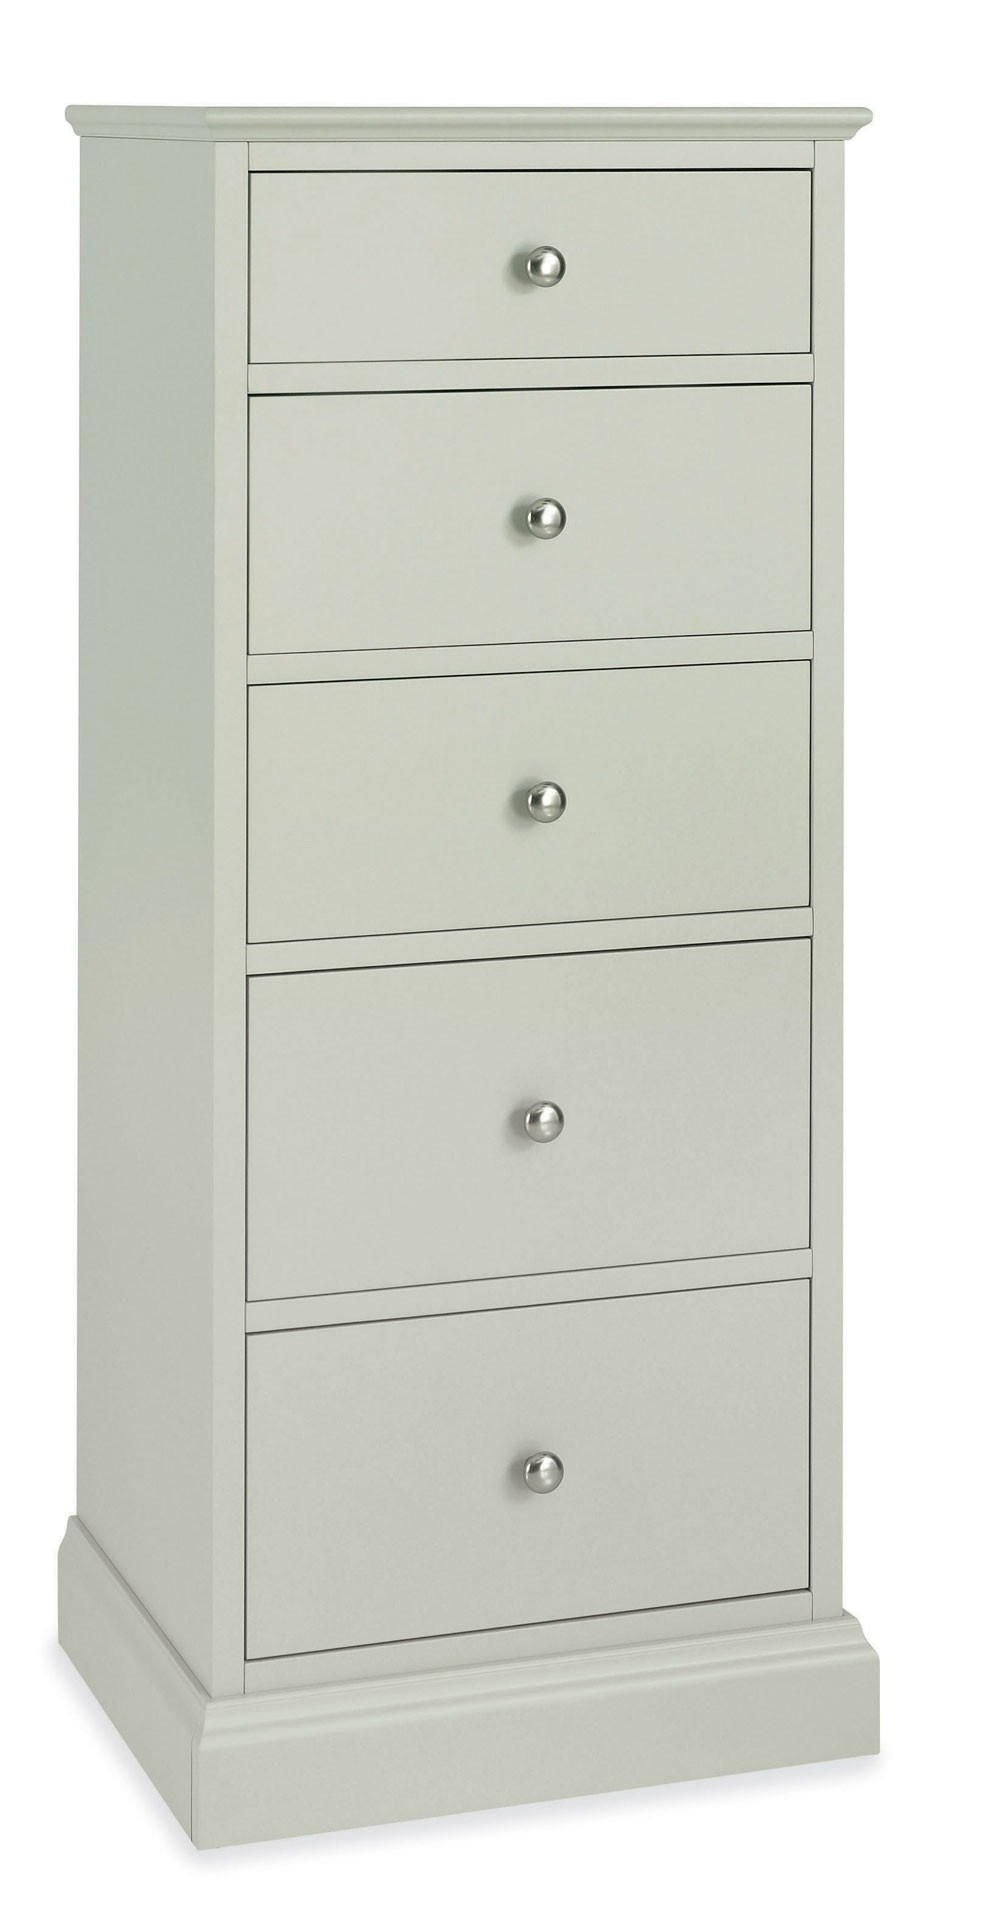 Ashenby Cotton 5 Drawer Tall Chest